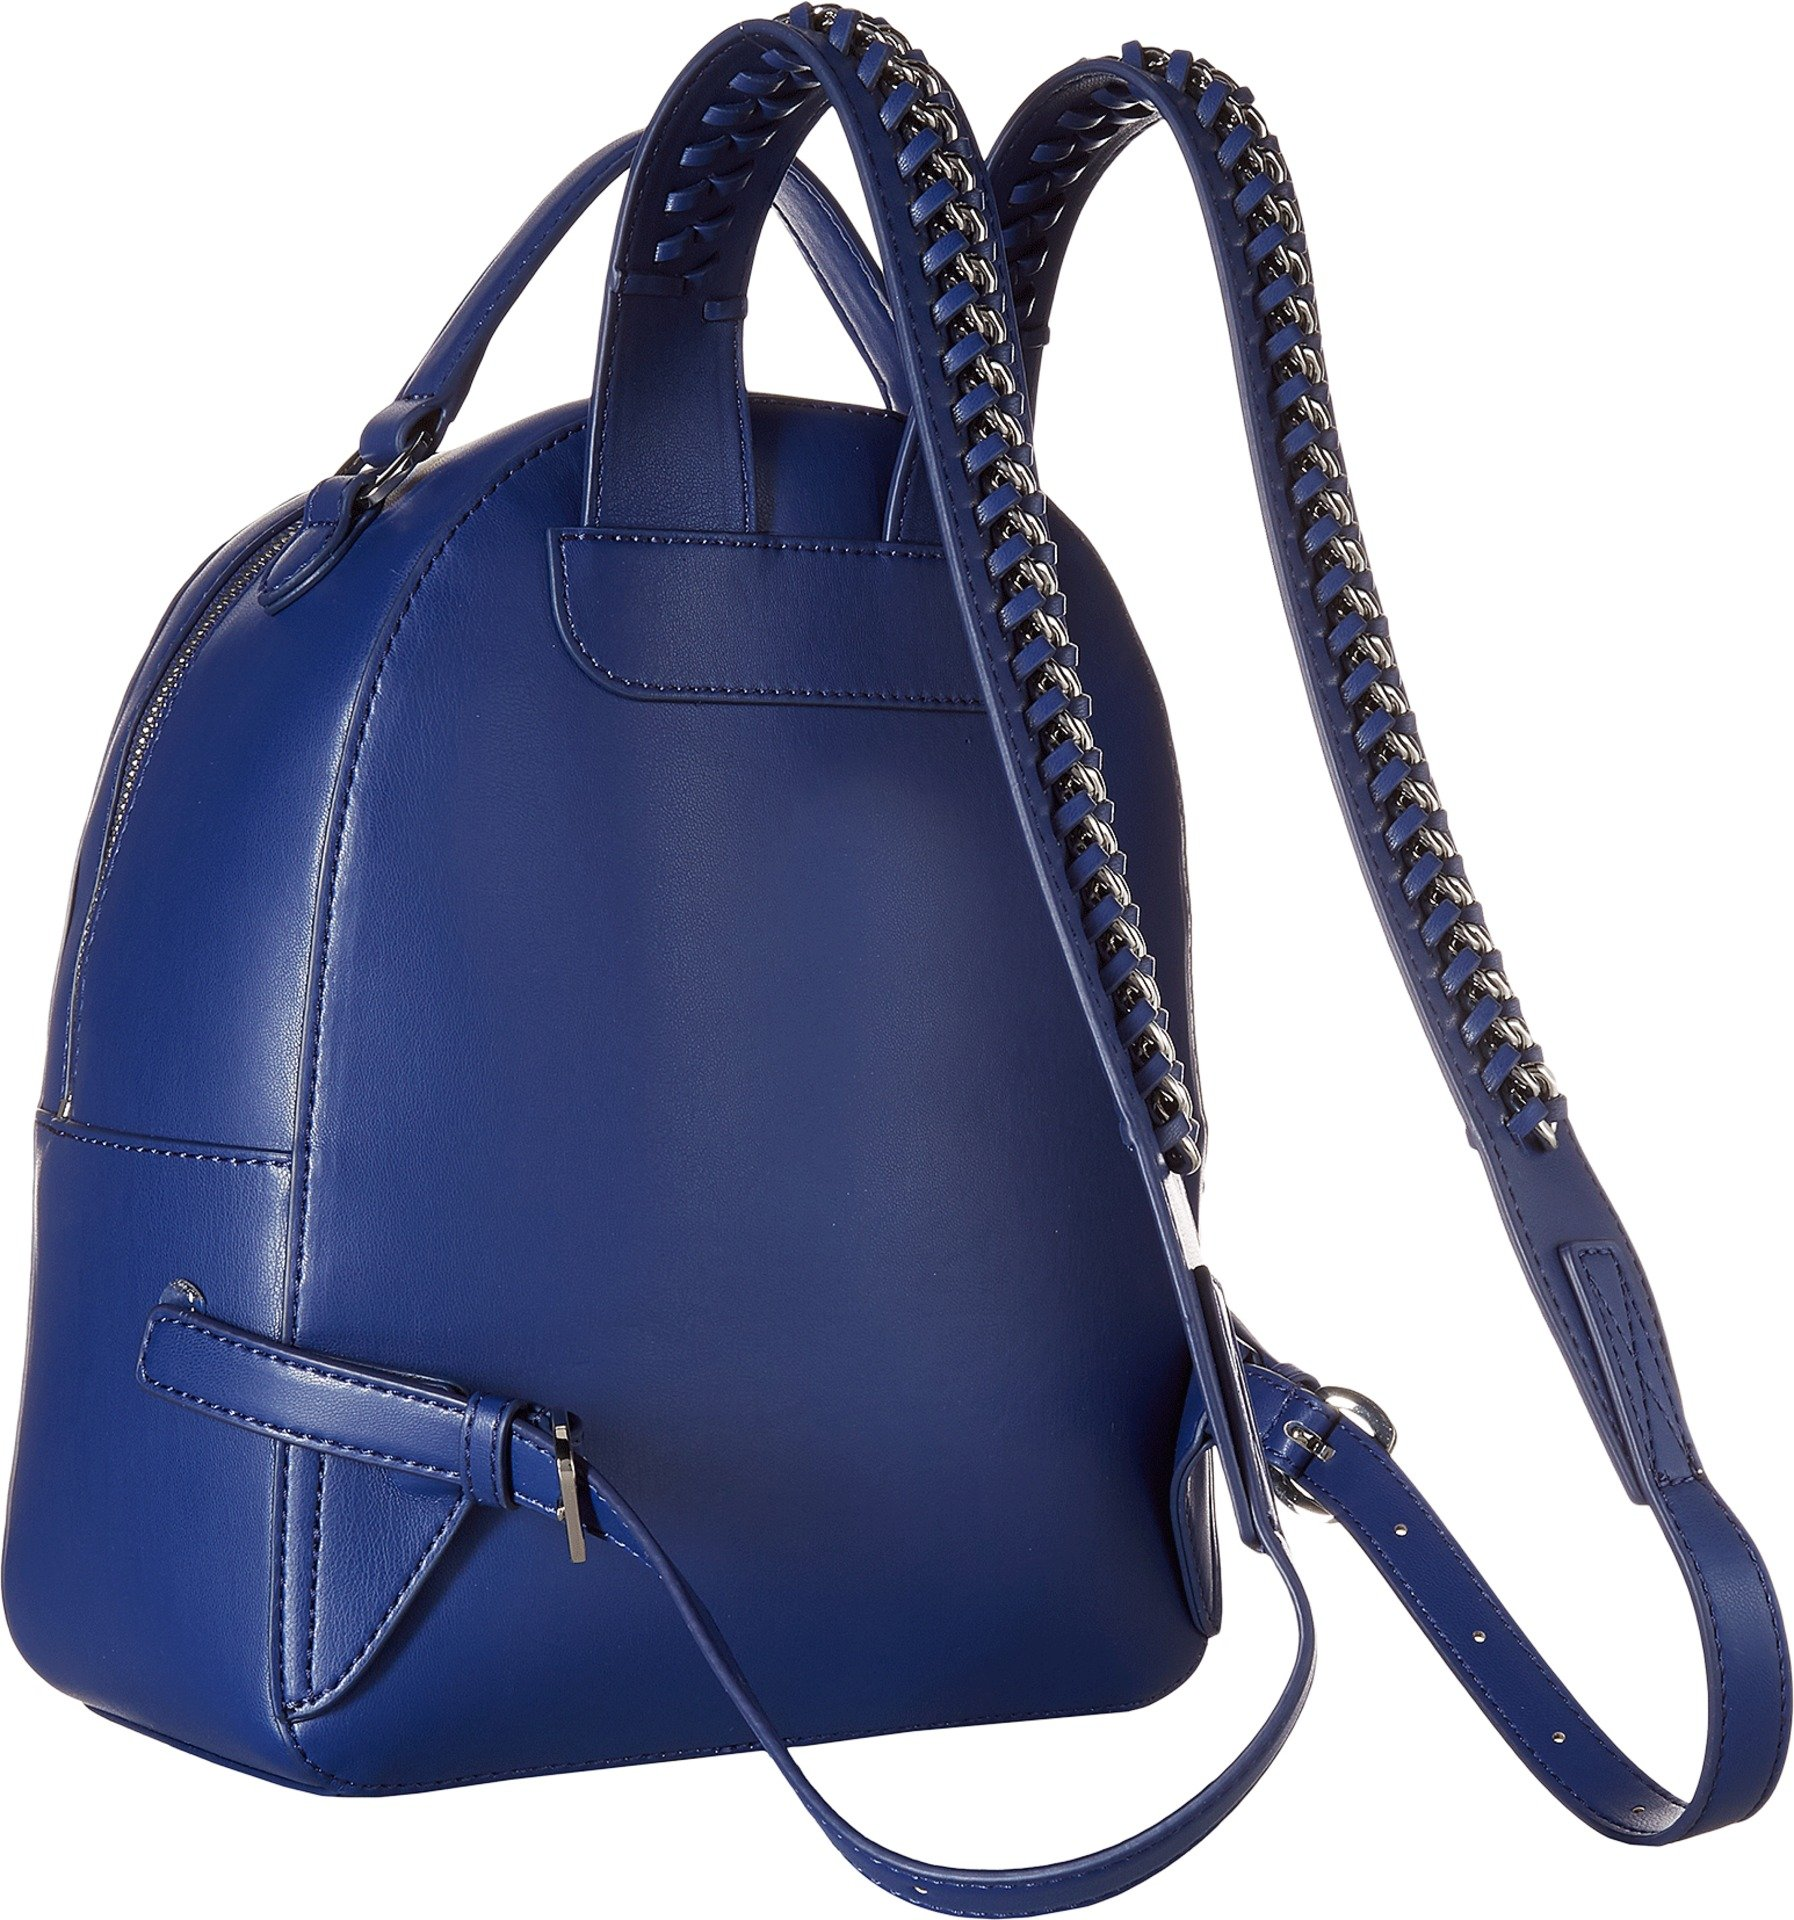 LOVE Moschino Women's Chain Strap Backpack Navy One Size by Love Moschino (Image #2)